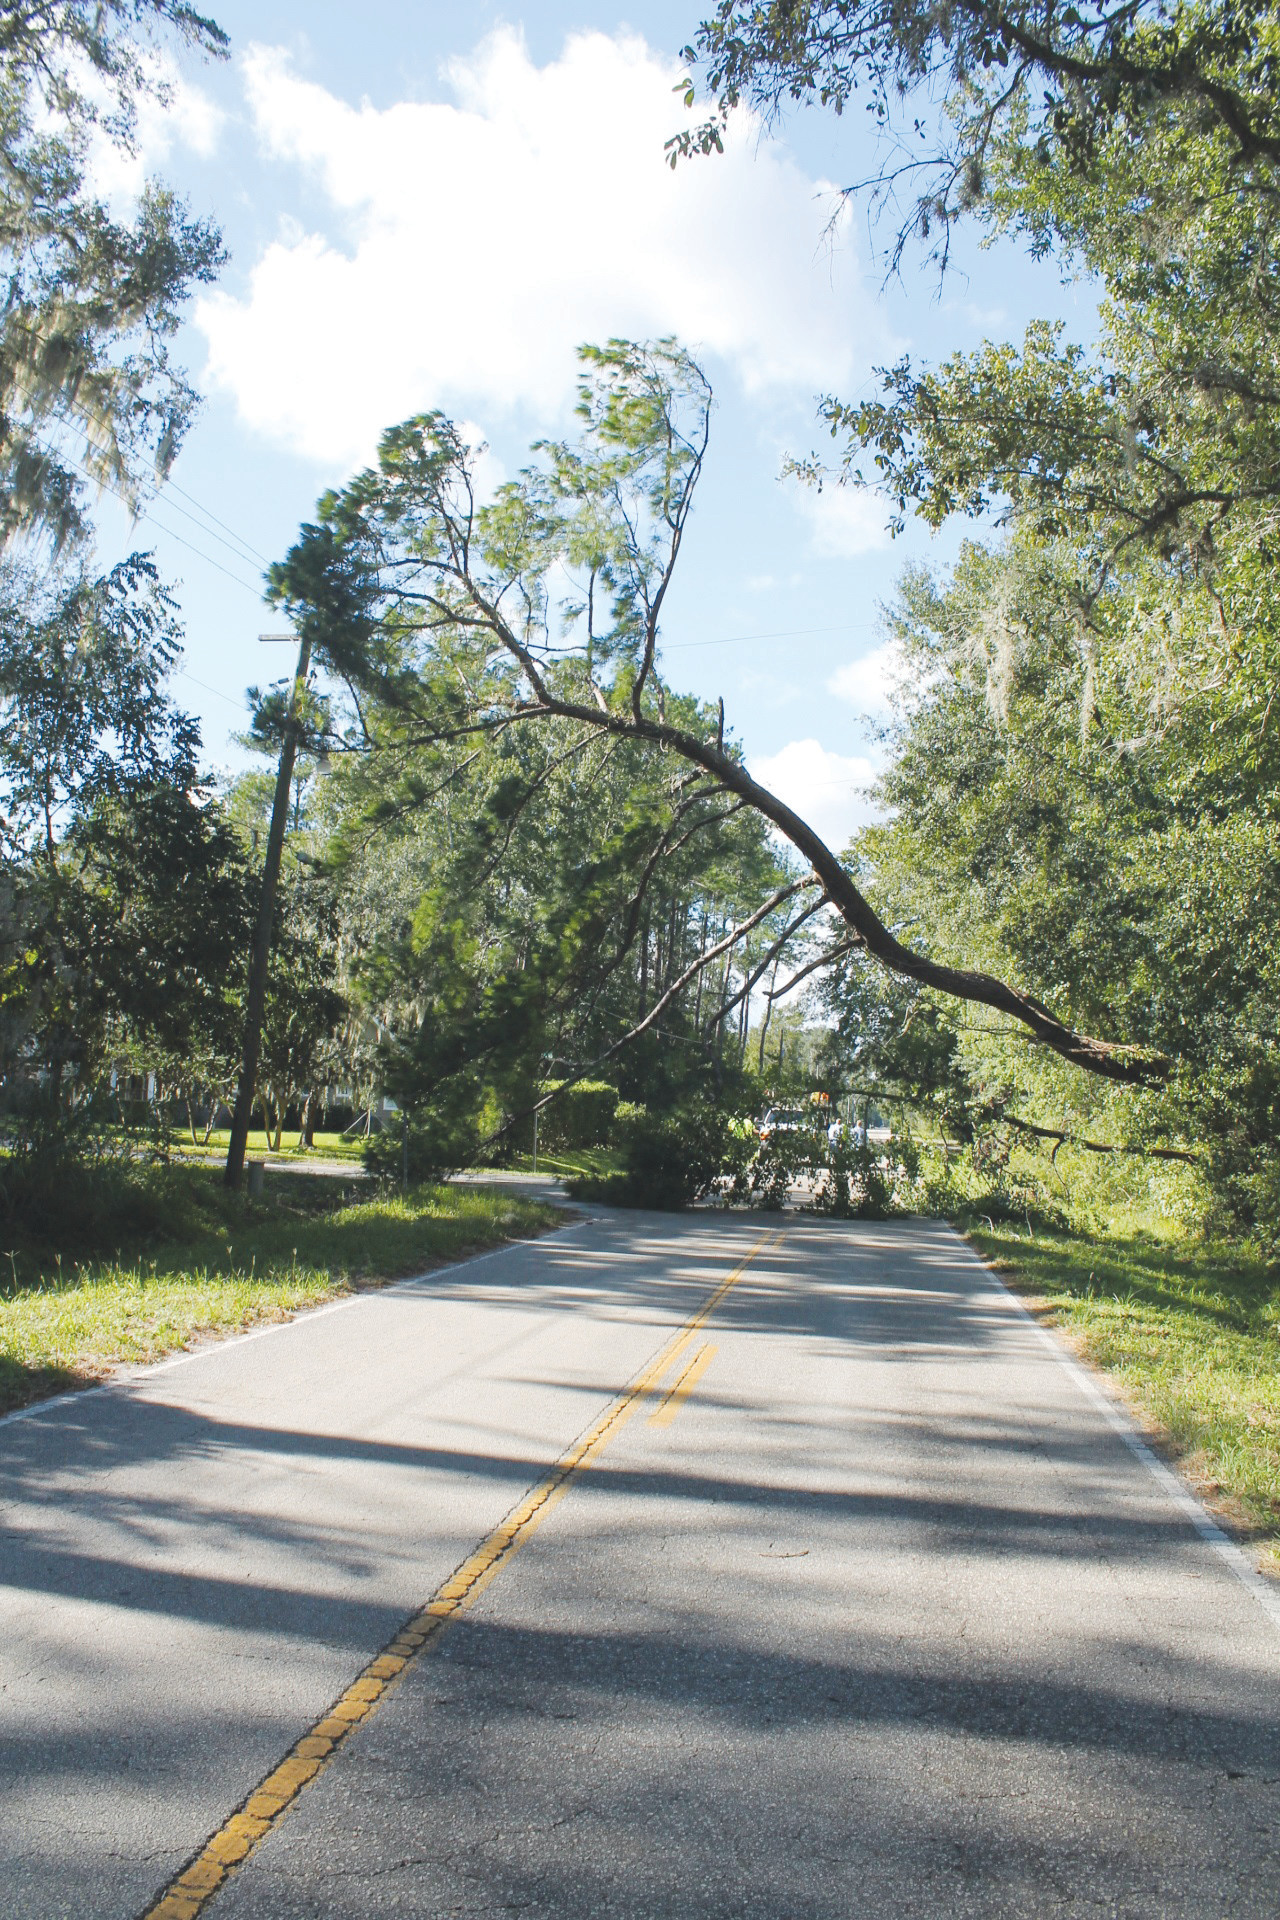 Here's a shot of a downed tree near Mahama Bluff Road and County Road 209 just north of Green Cove Springs.